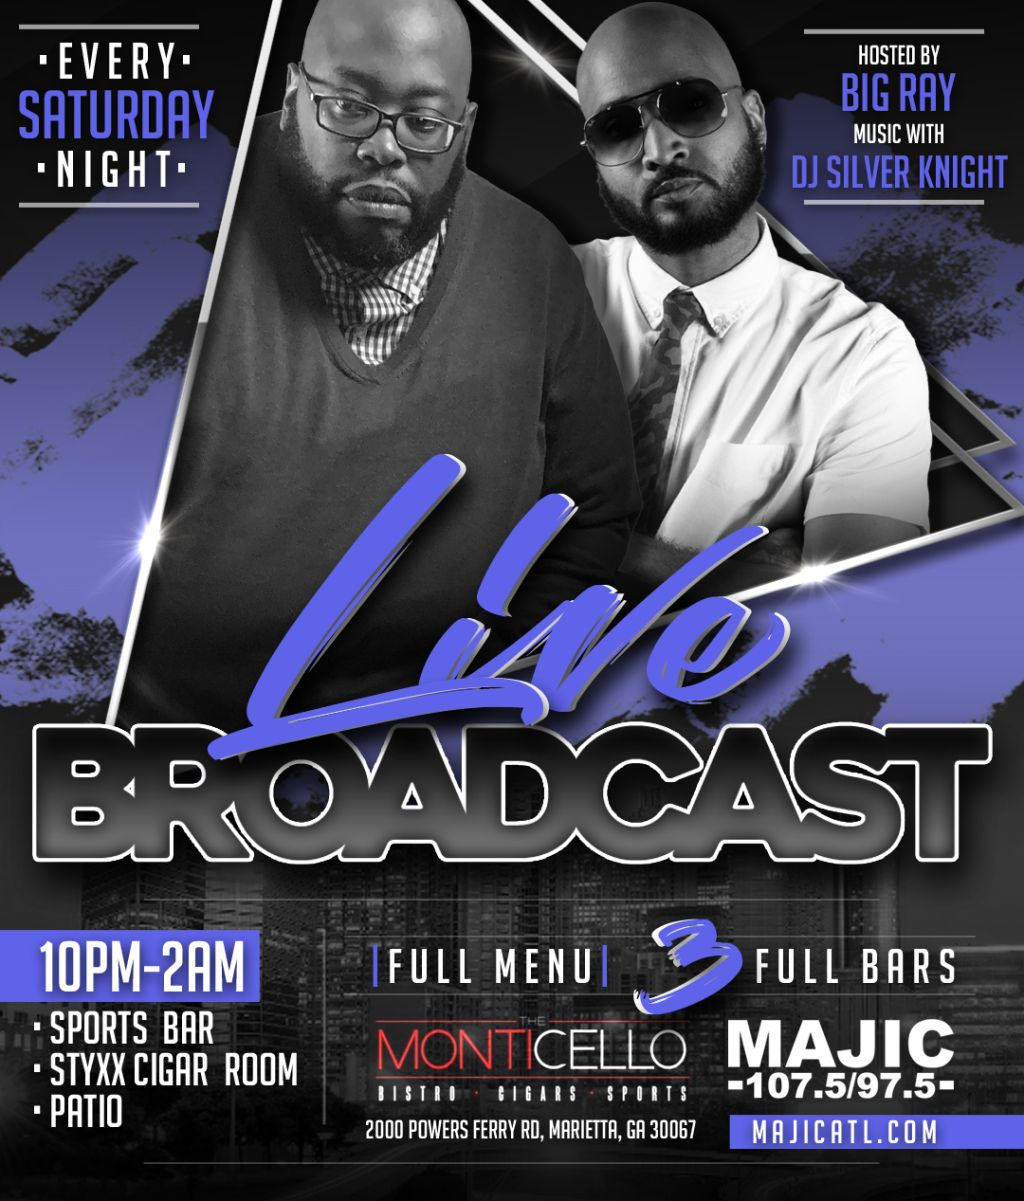 The Monticello: Live Broadcast With Big Ray & DJ Silver Knight